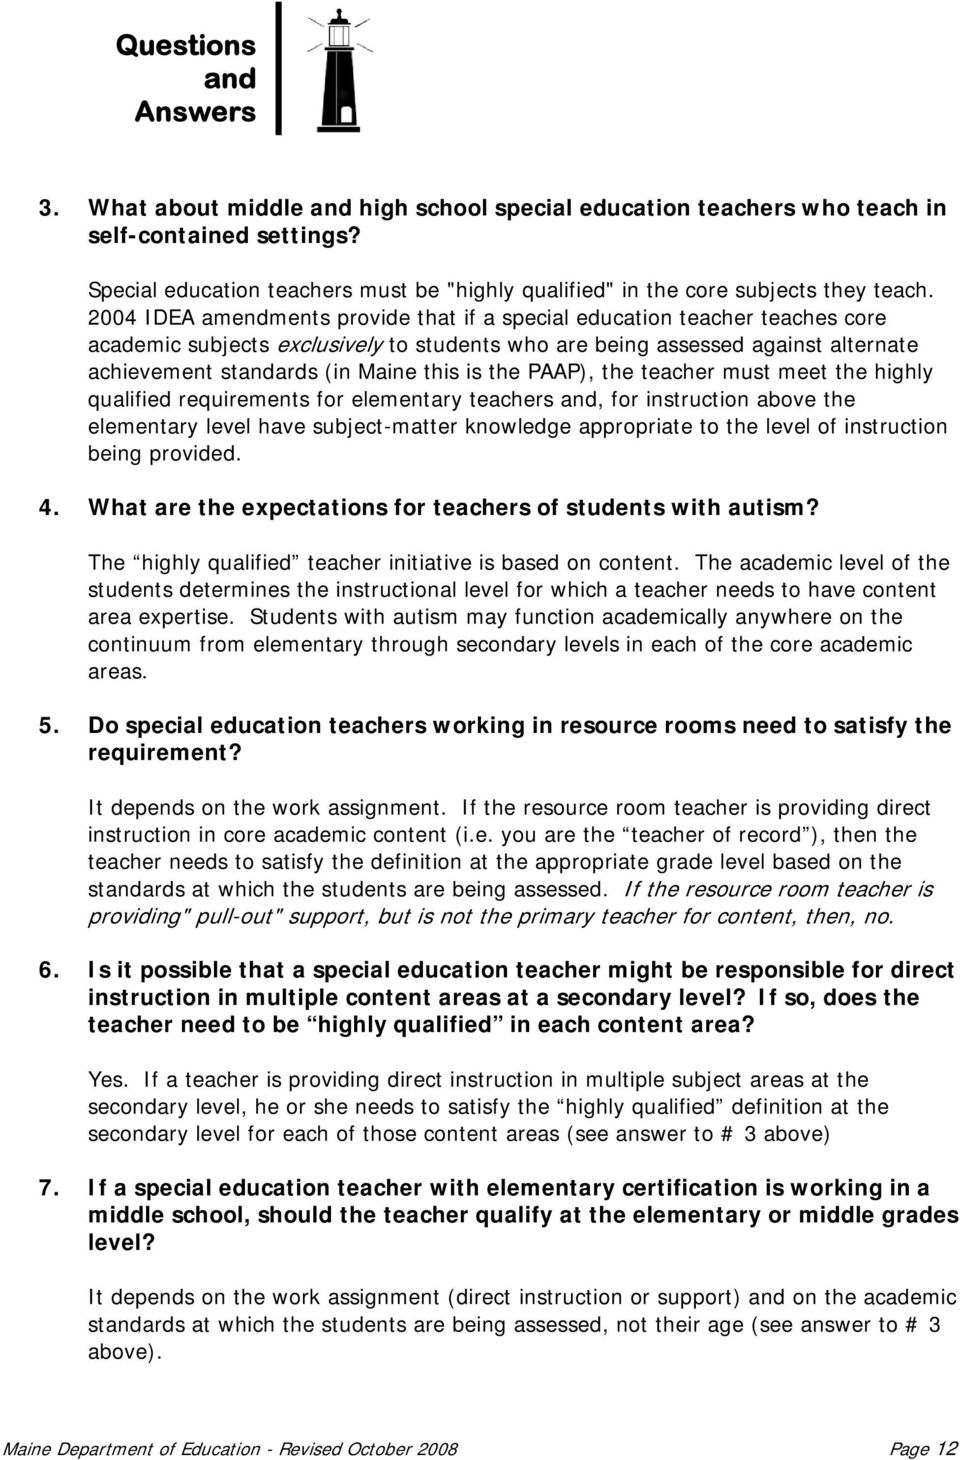 the PAAP), the teacher must meet the highly qualified requirements for elementary teachers, for instruction above the elementary level have subject-matter knowledge appropriate to the level of